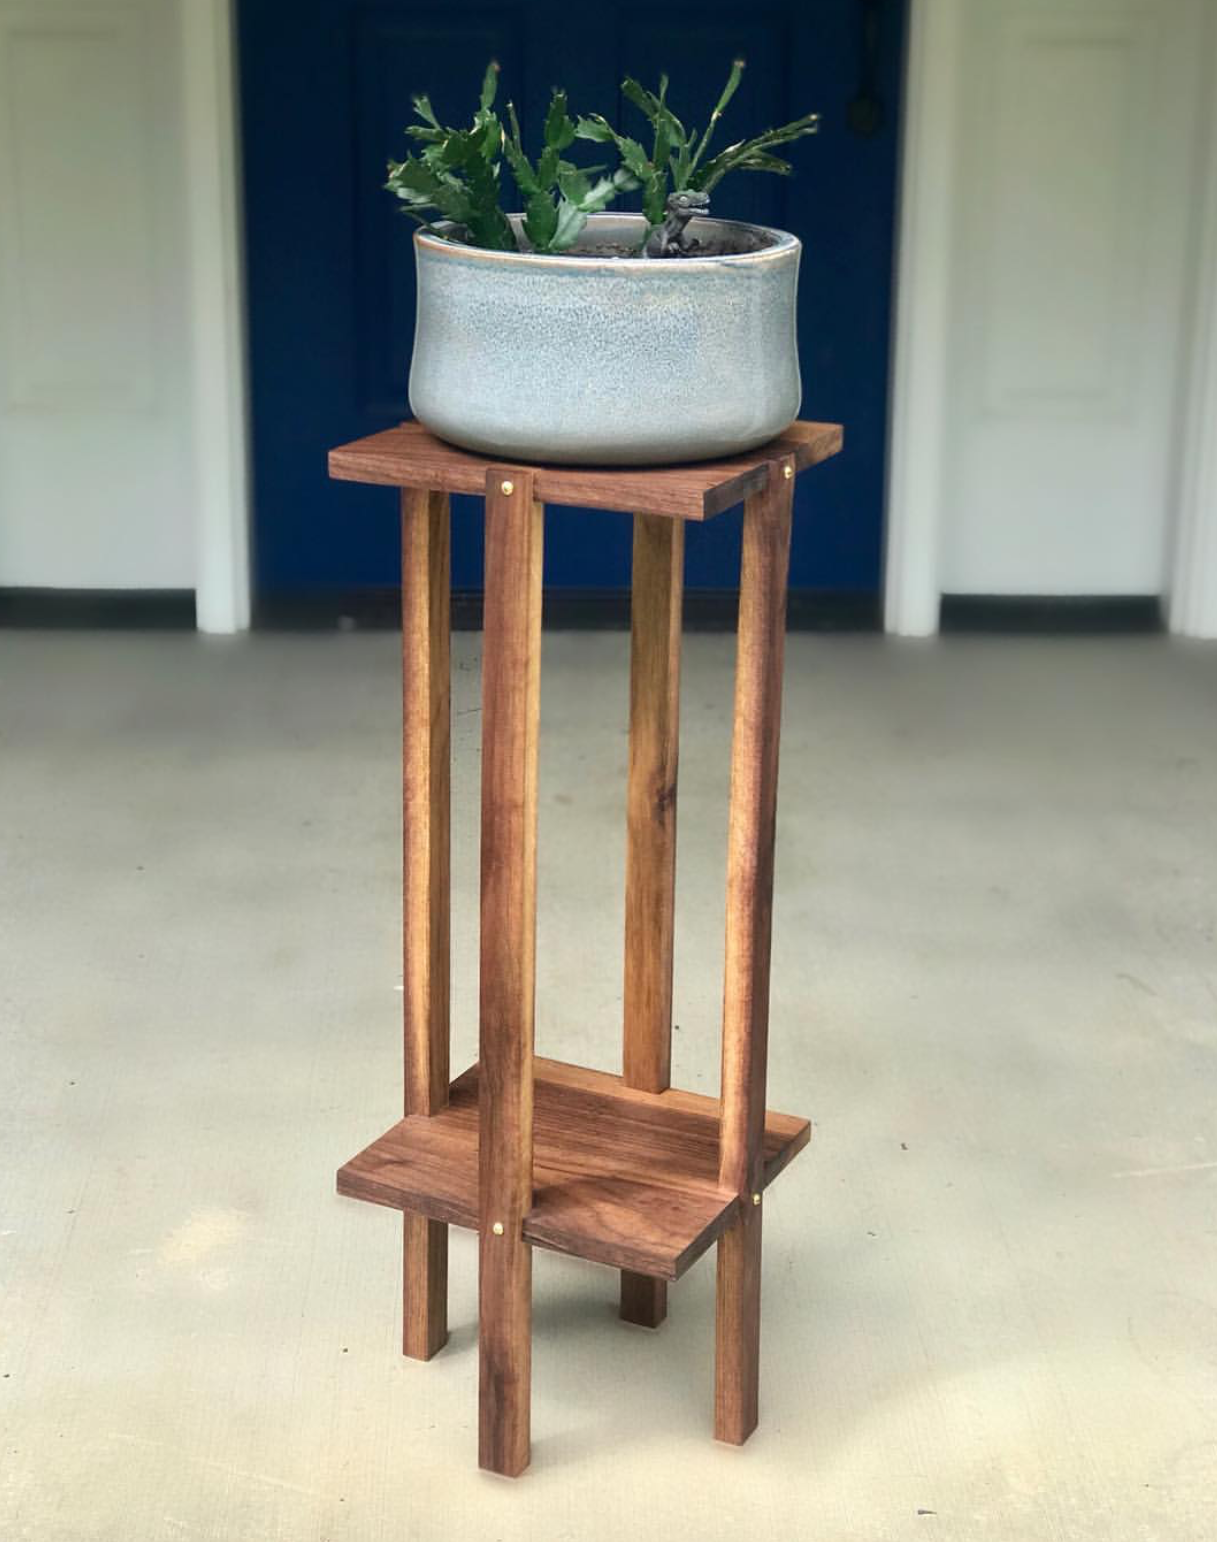 - This custom plant stand with is made of walnut and solid brass hardware. Check back soon for a link to purchase this beautiful plant stand for yourself!